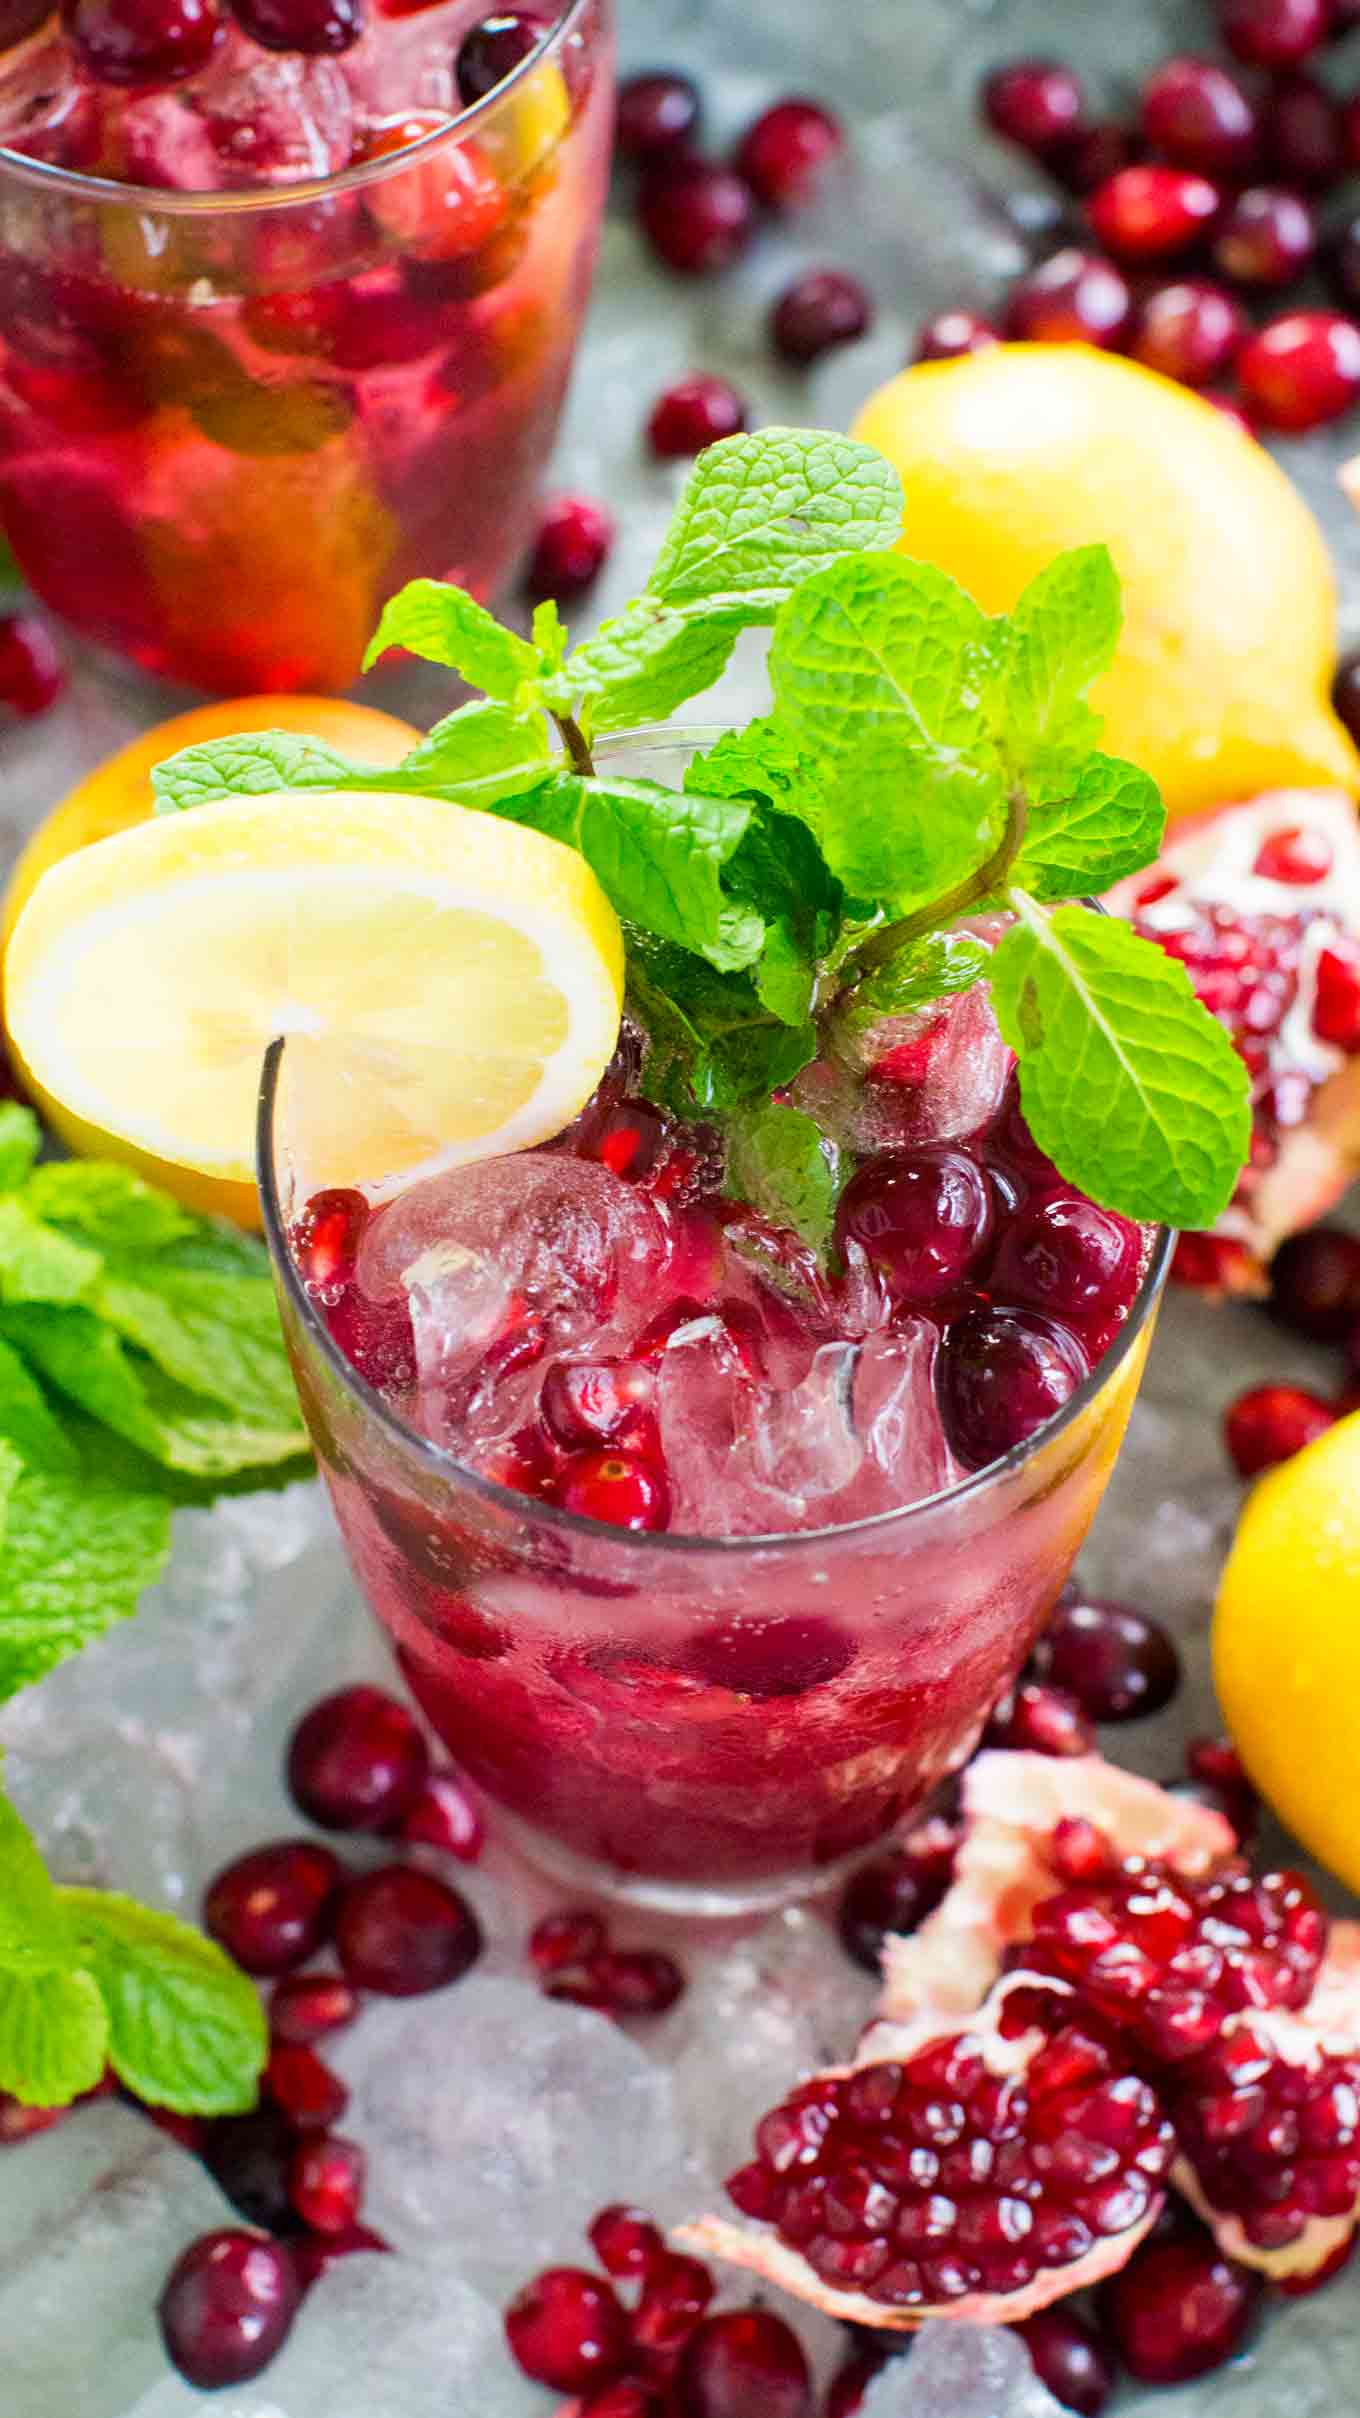 Delicious Cranberry Mocktail is the perfect fall drink, sweet and refreshing, can also be made ahead of time for your Thanksgiving feast.